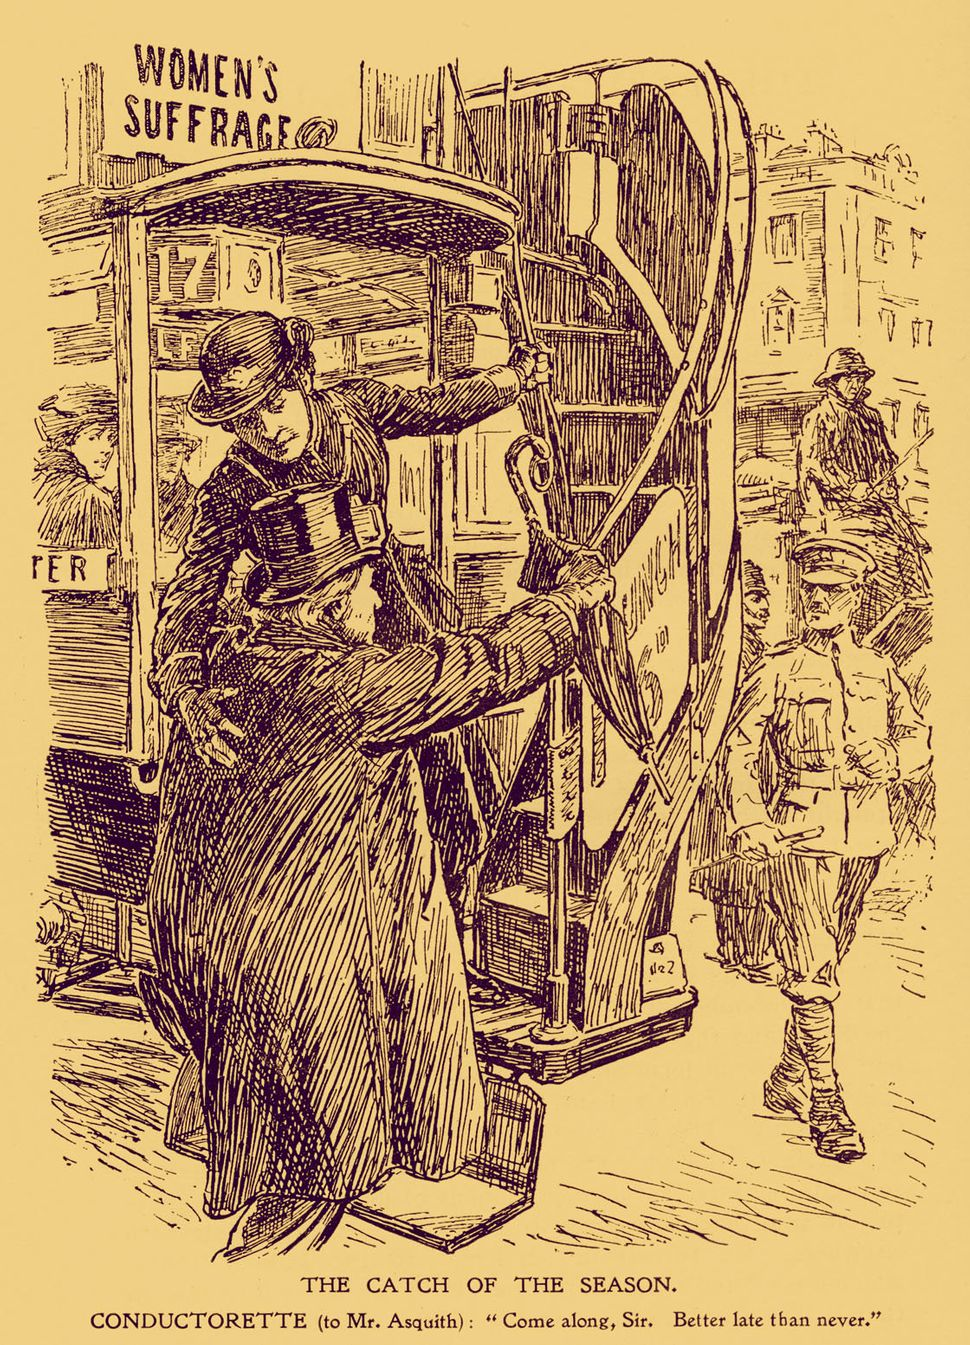 A World War I caricature of a female bus conductor helping British politician Lord Asquith onto a bus. Asquith changed his po